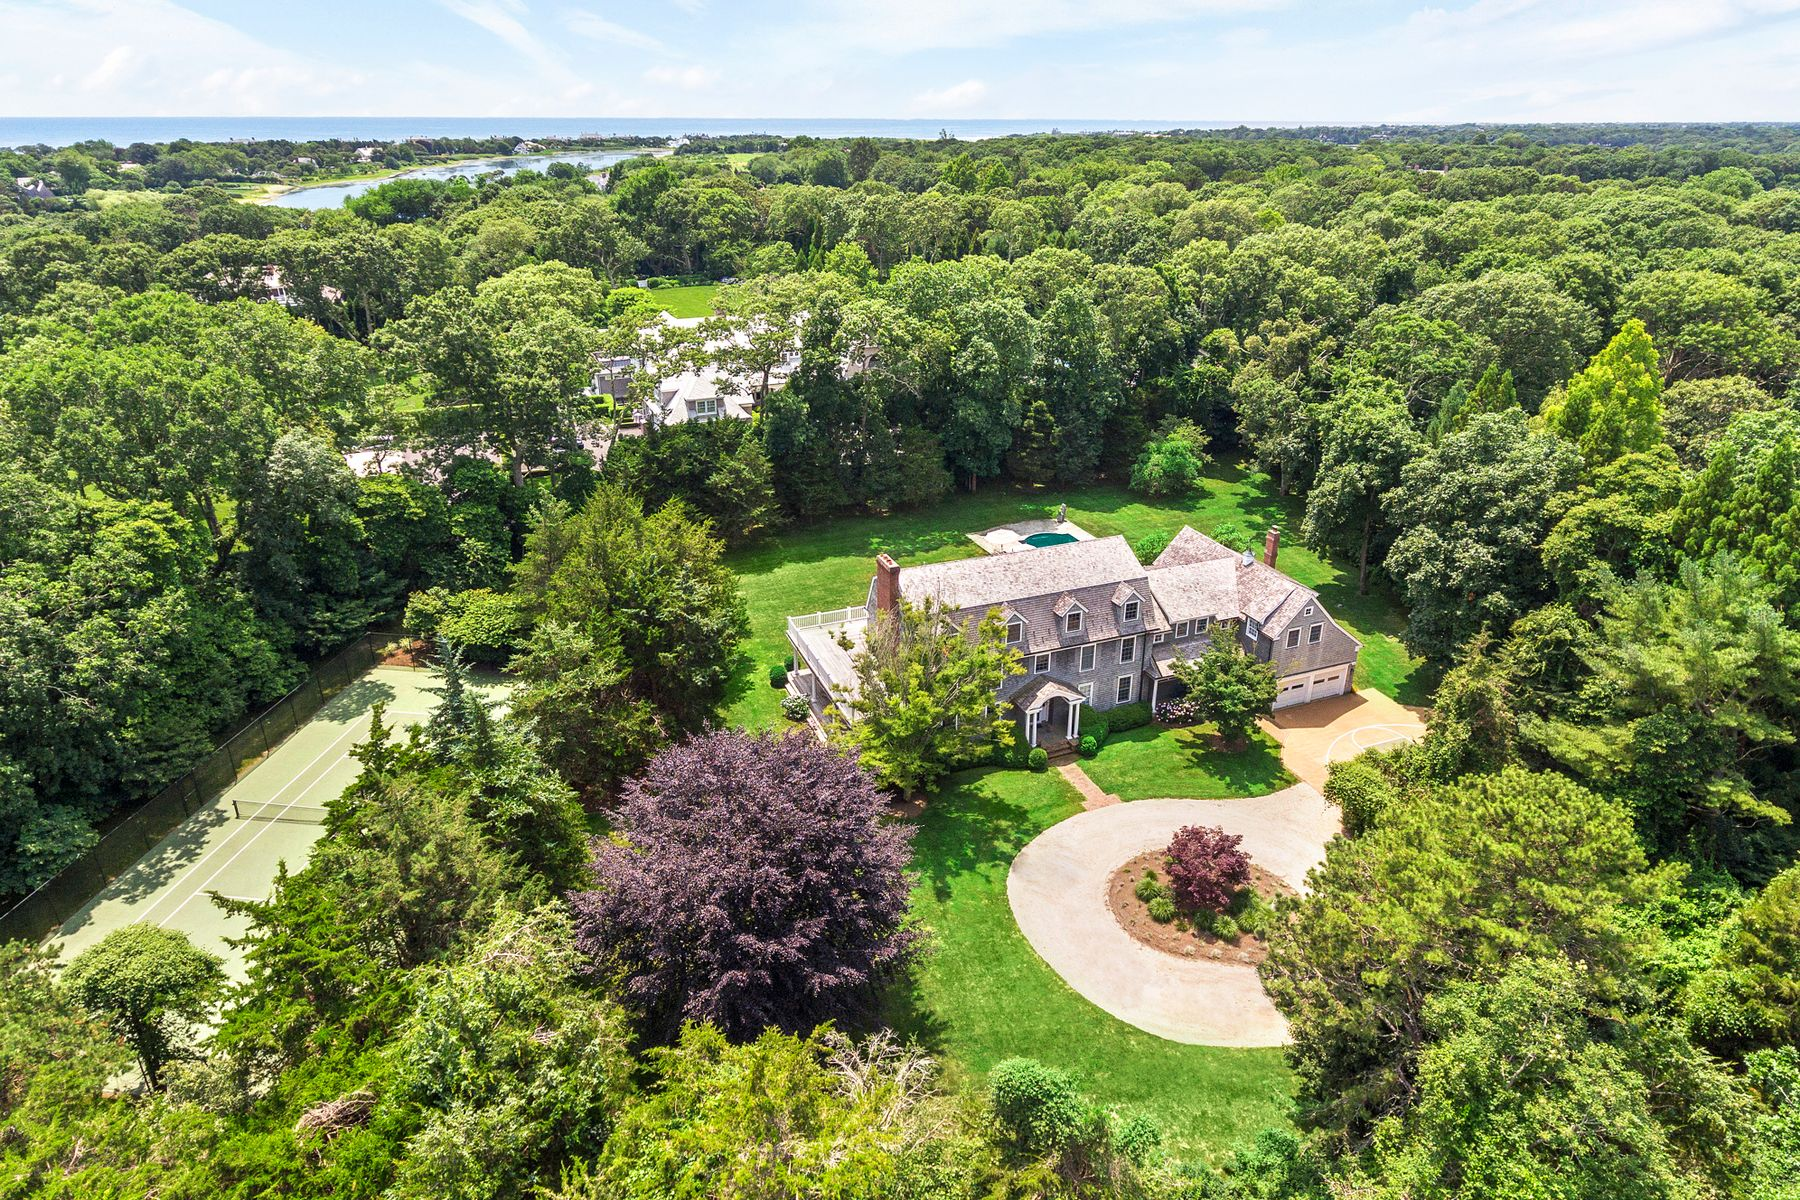 Single Family Homes for Active at EAST HAMPTON 2.3 ACRES WITH TENNIS NEAR 24 Jericho Close East Hampton, New York 11937 United States